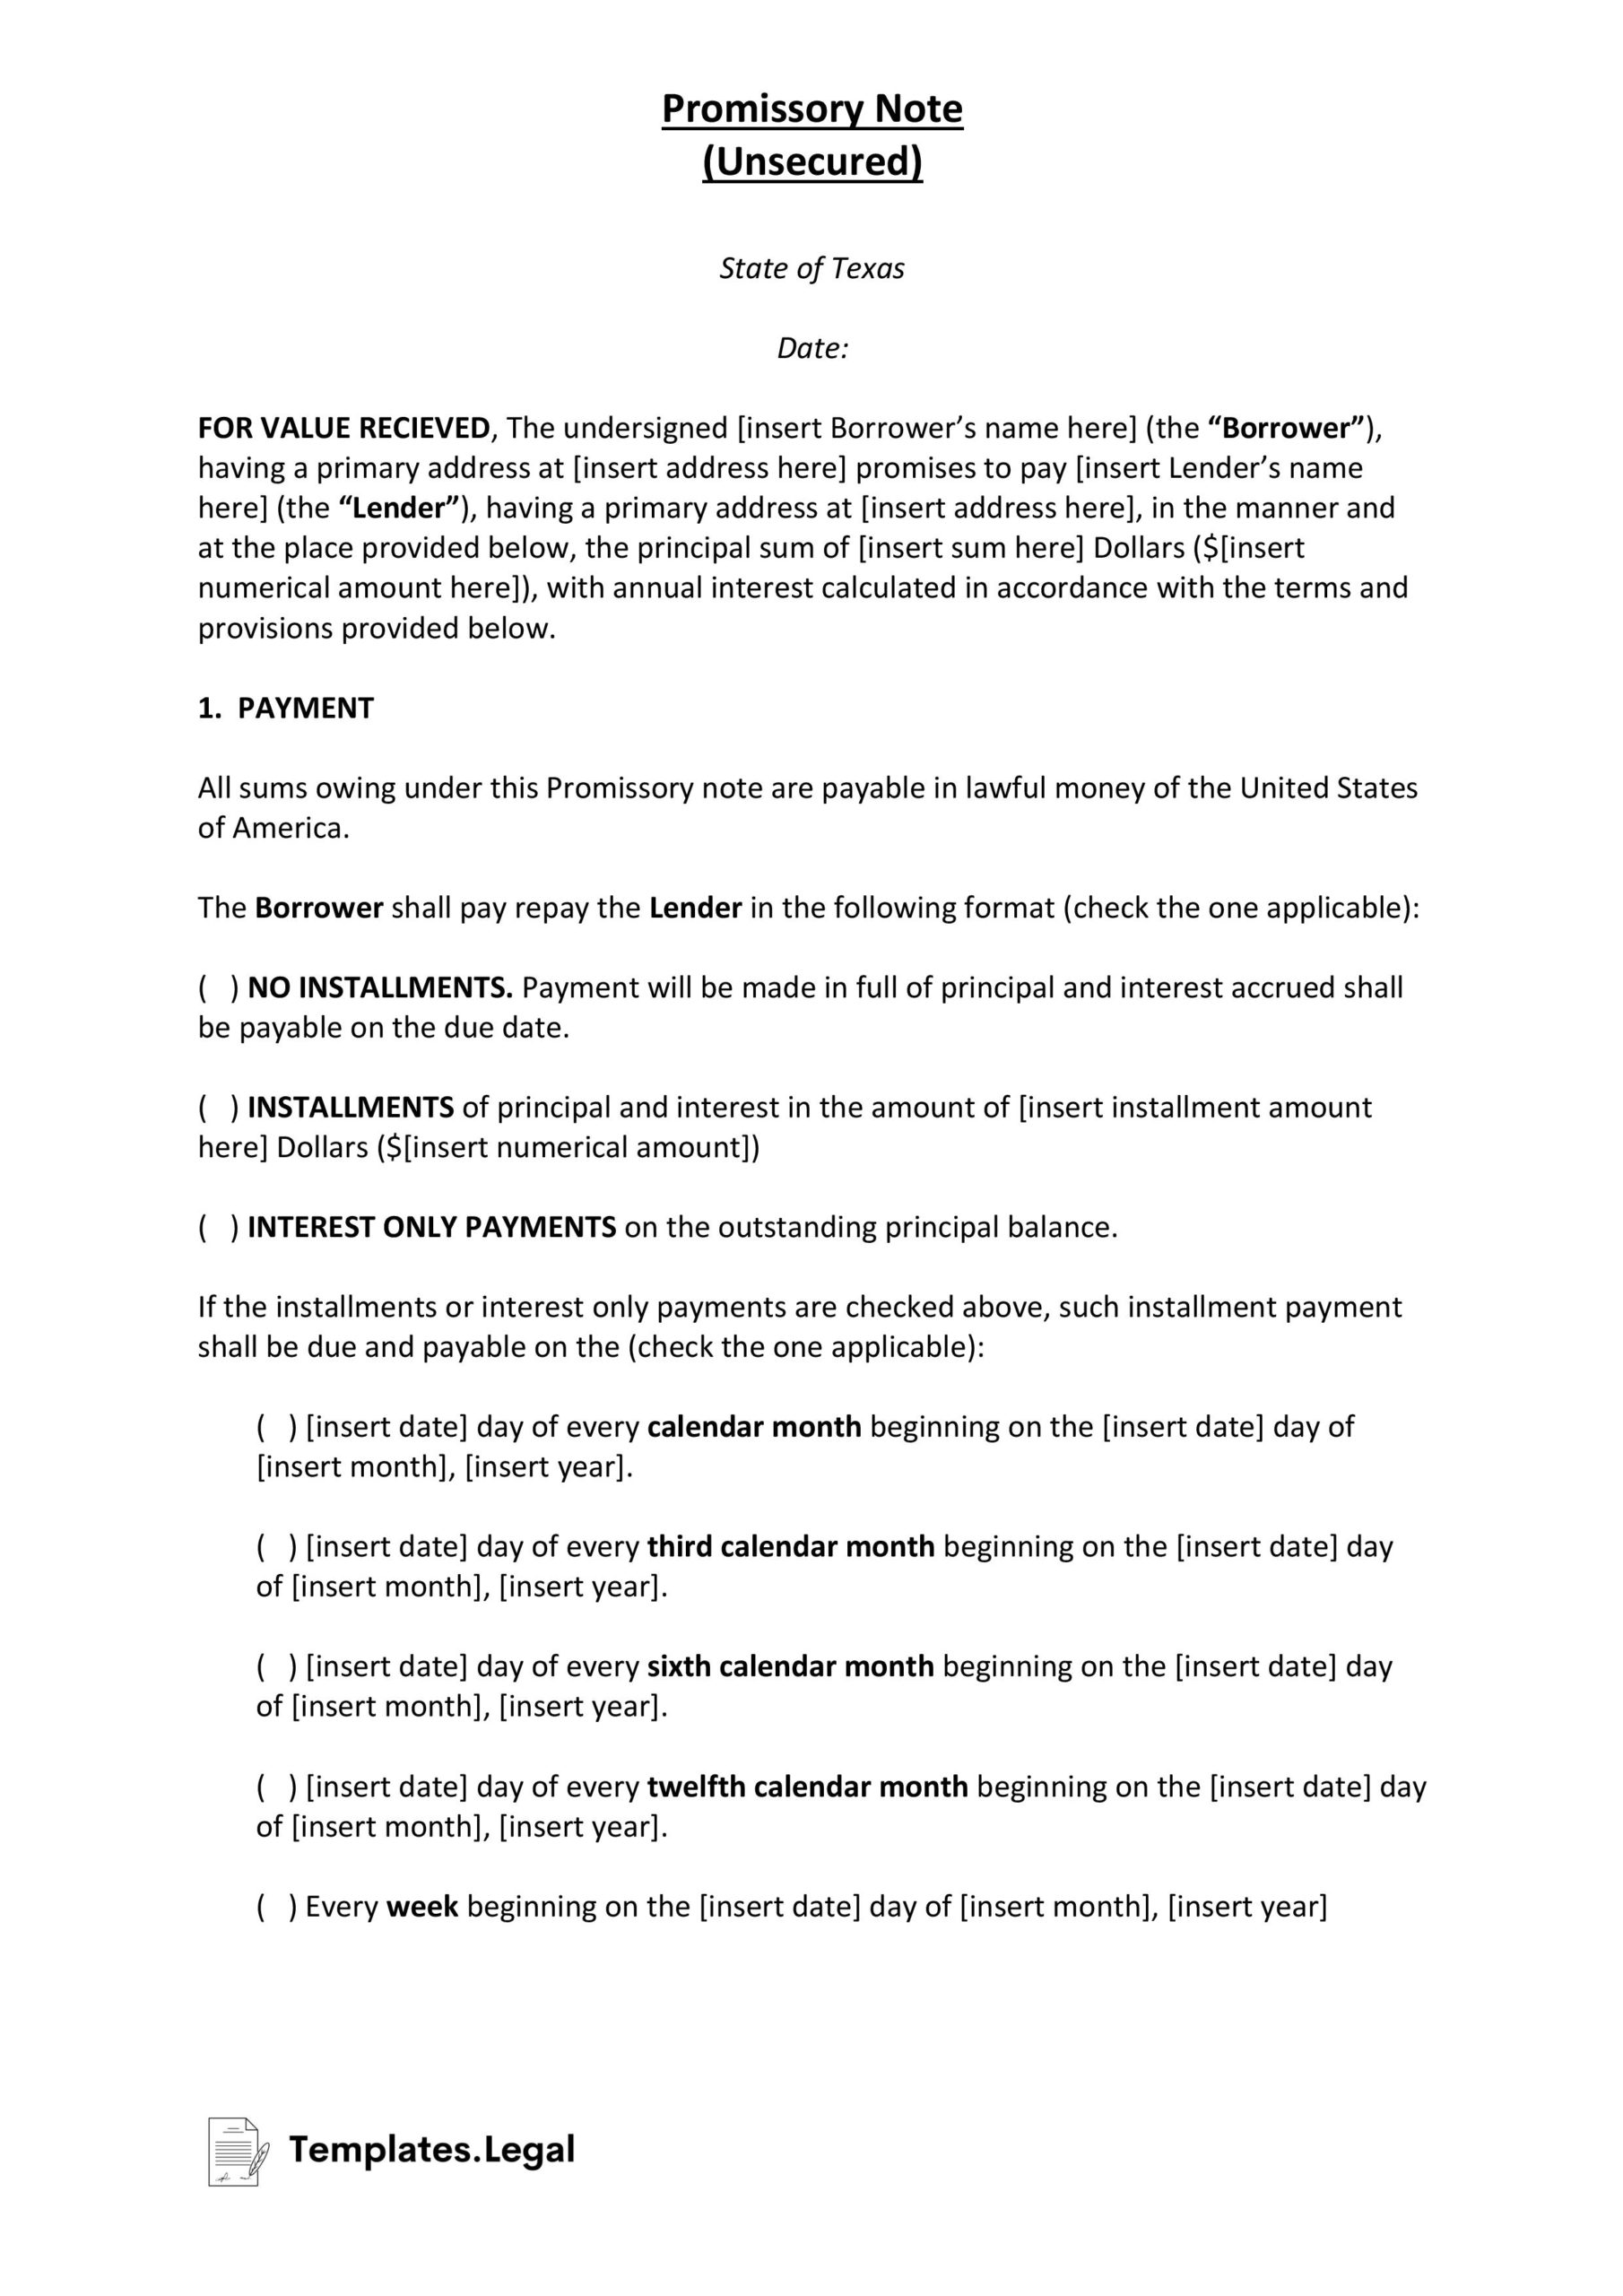 Texas Unsecured Promissory Note - Templates.Legal